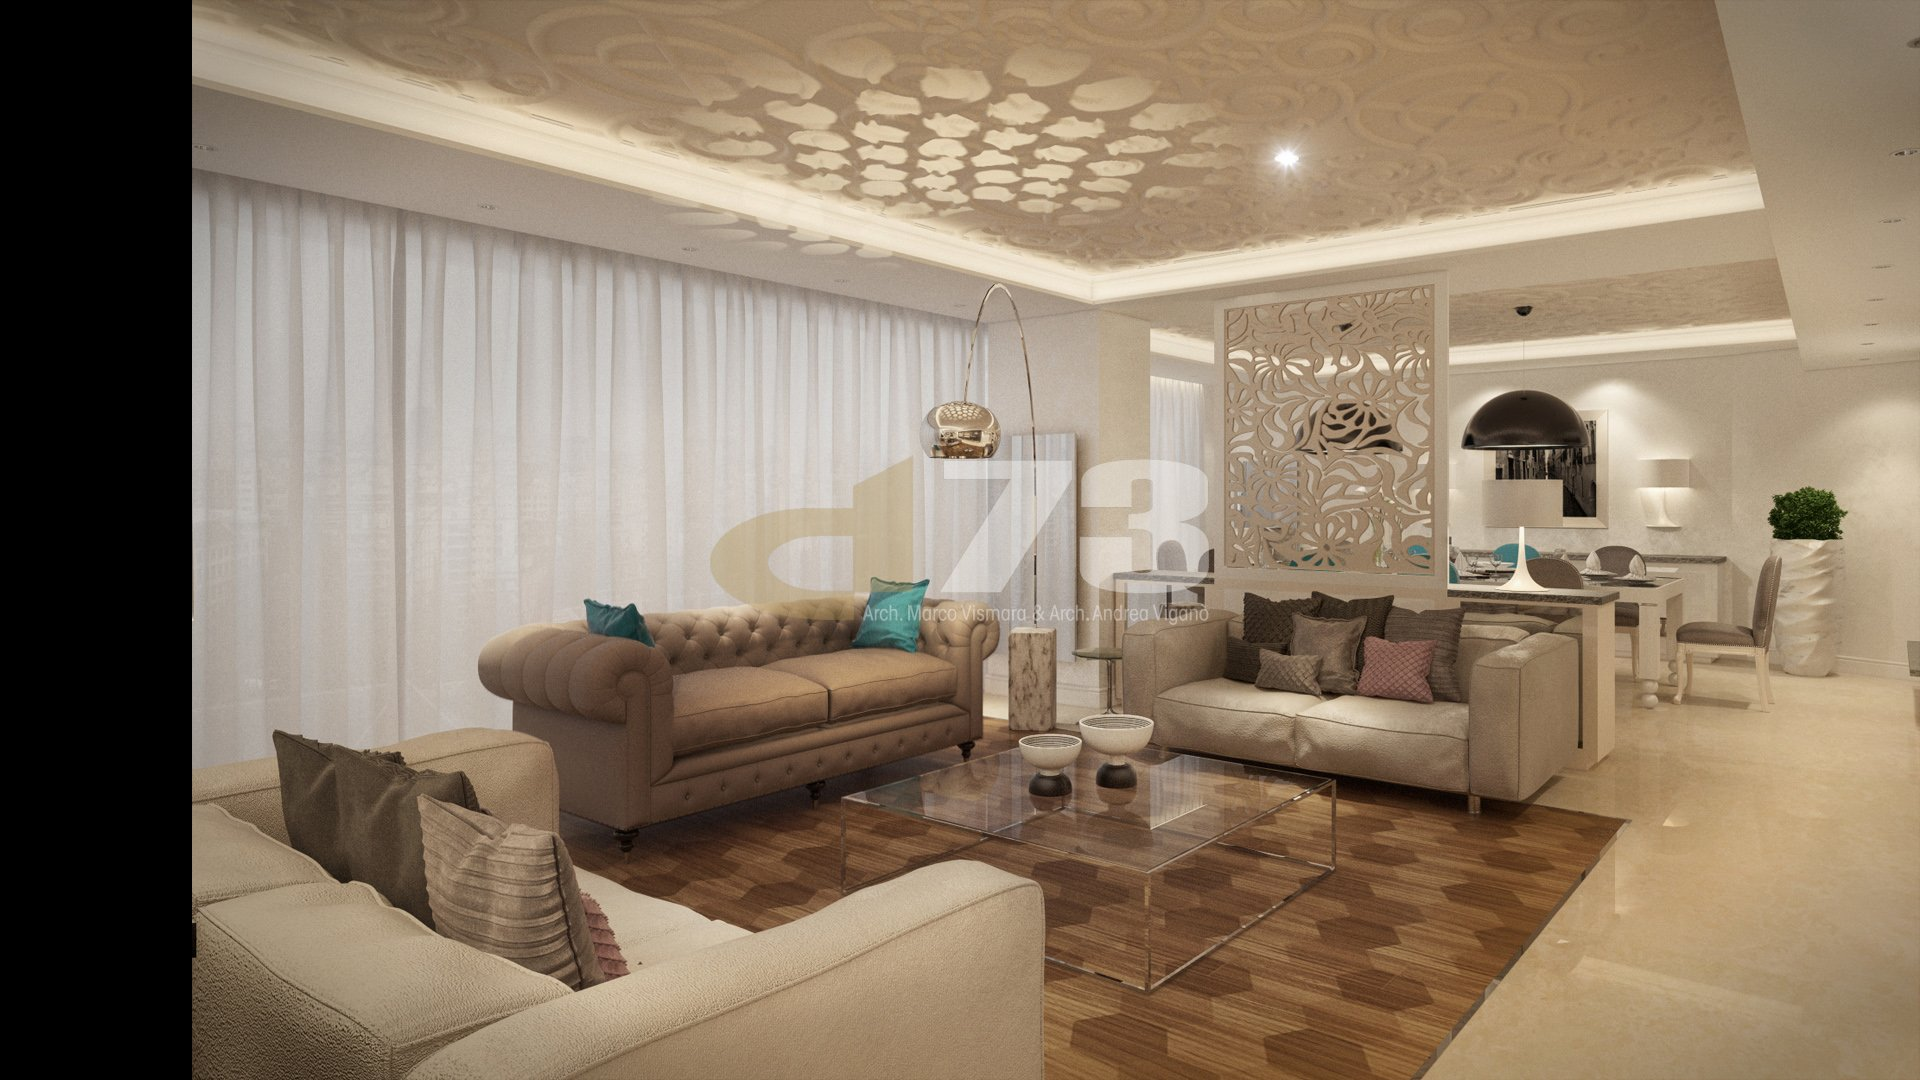 Residence Apartment in Baabda, Lebanon